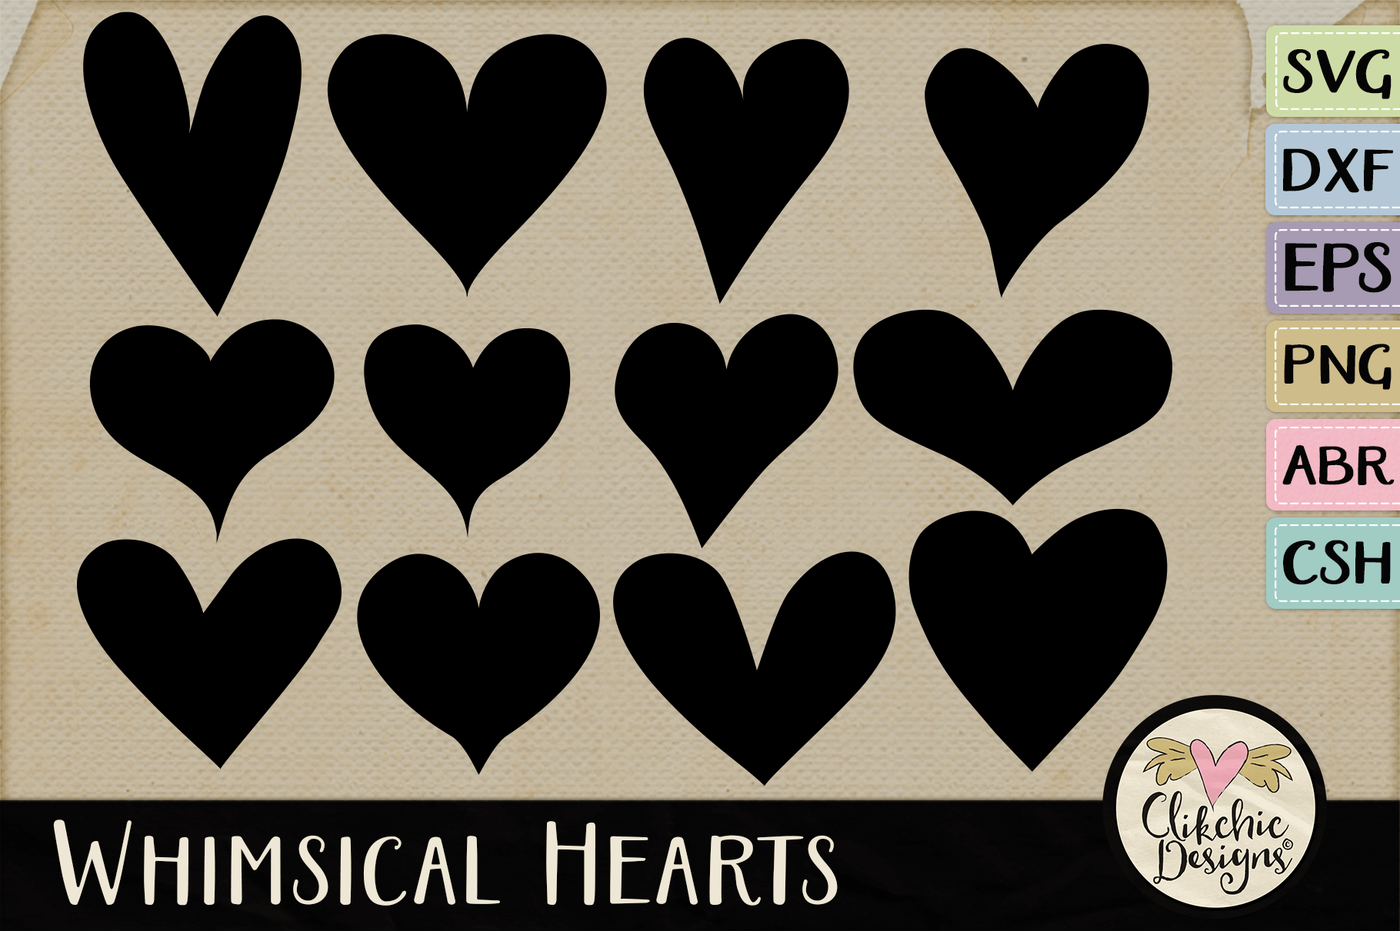 Whimsical Hearts Svg Dxf Cutting Files Photoshop Brushes By